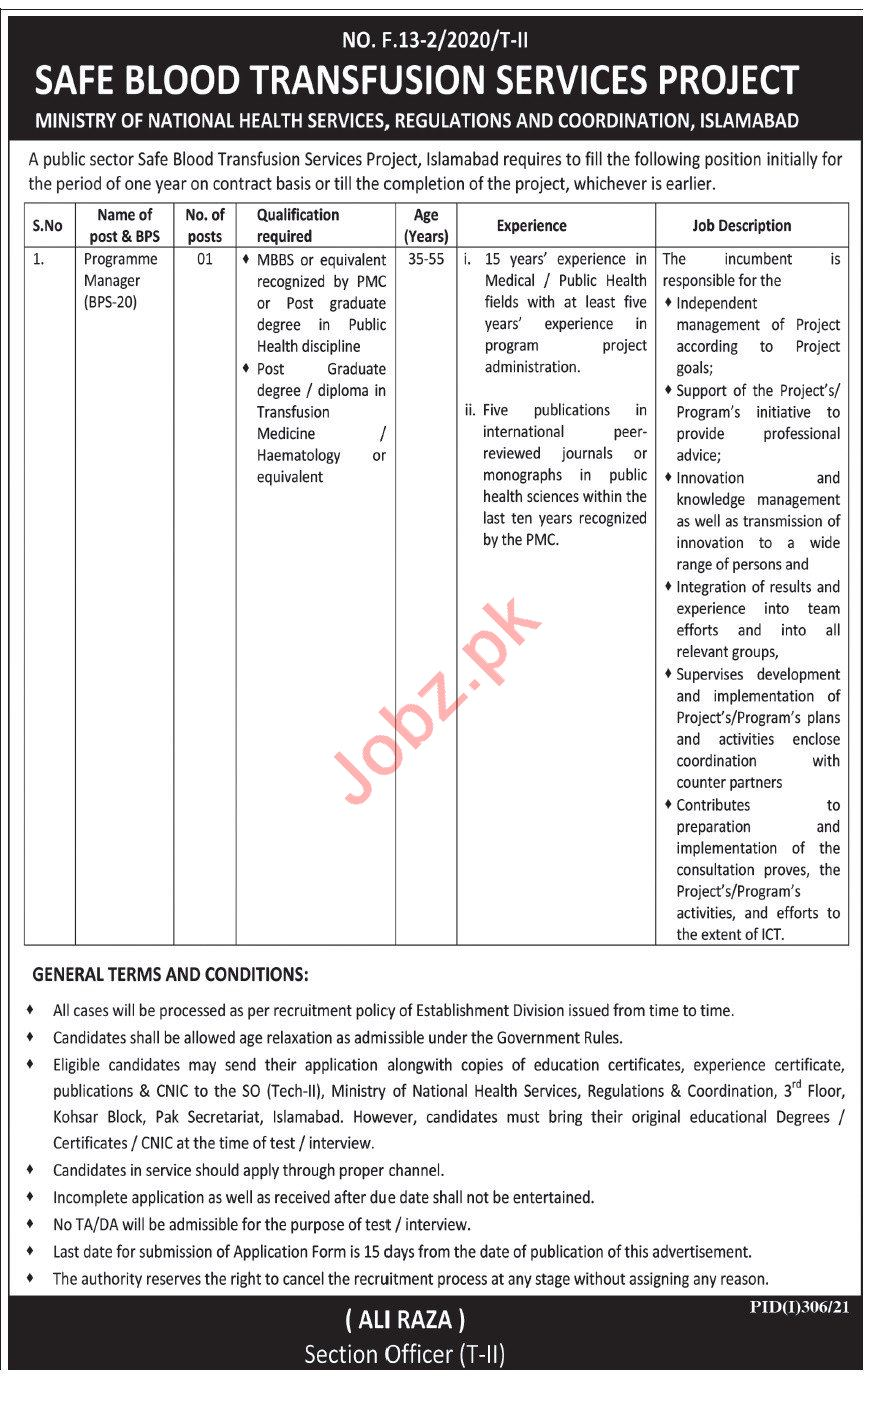 Safe Blood Transfusion Services Project Islamabad Jobs 2021